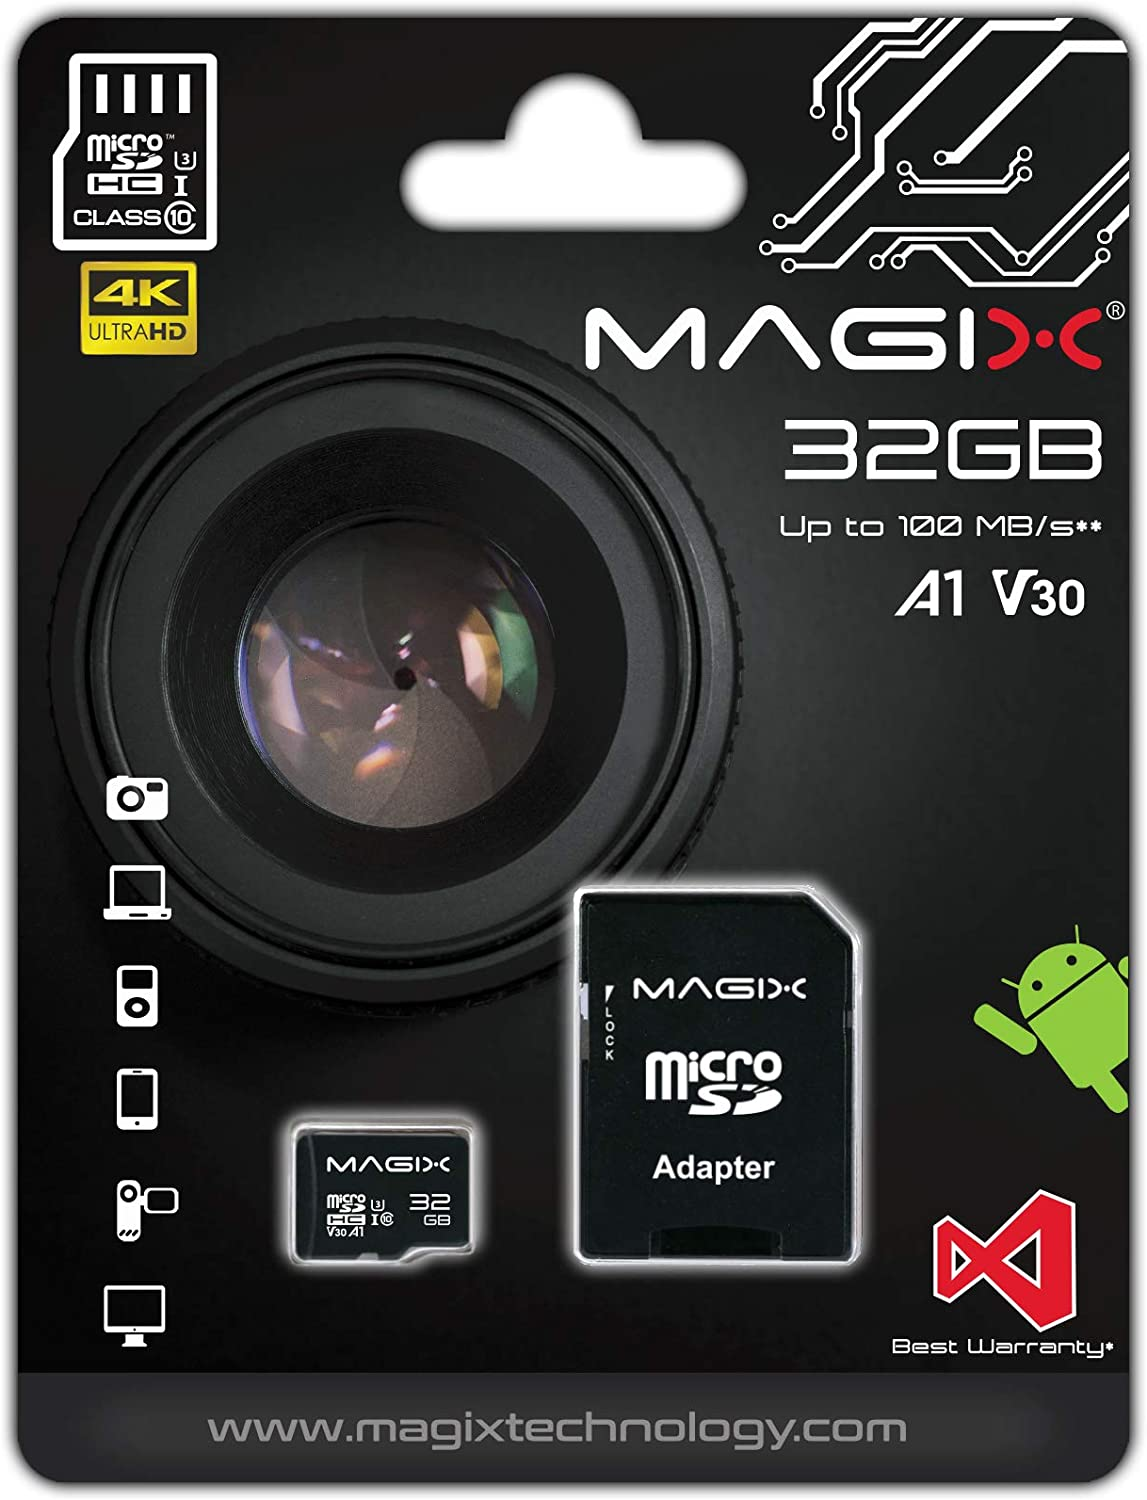 Magix MicroSD Card 4K Series Class10 V30 + SD Adapter, Read Speed Up to 100 MB/s (32GB)